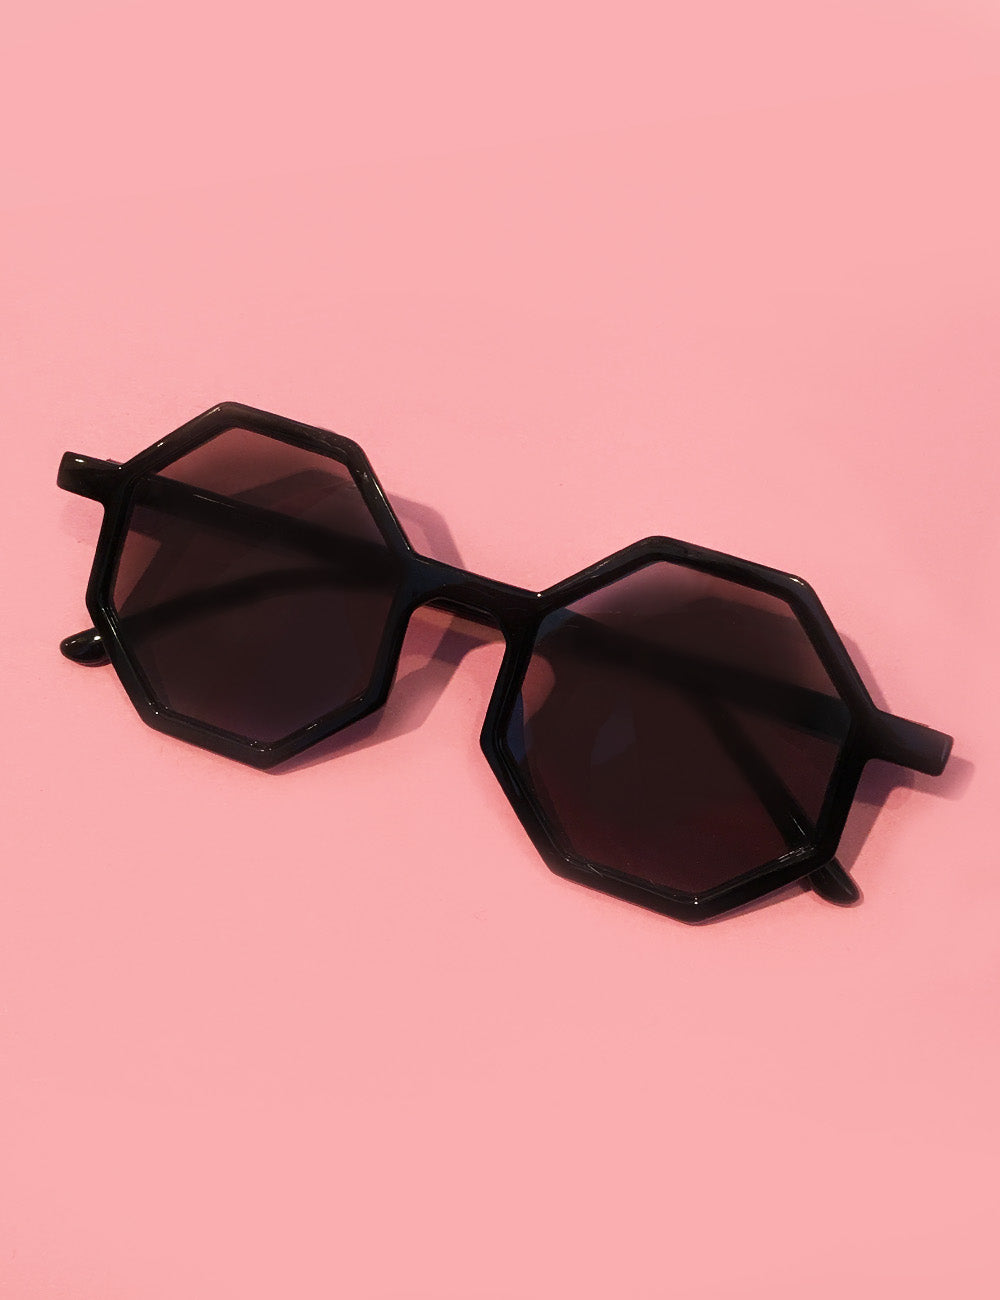 Solid Black Thin Geometric Retro 1960s Sunglasses